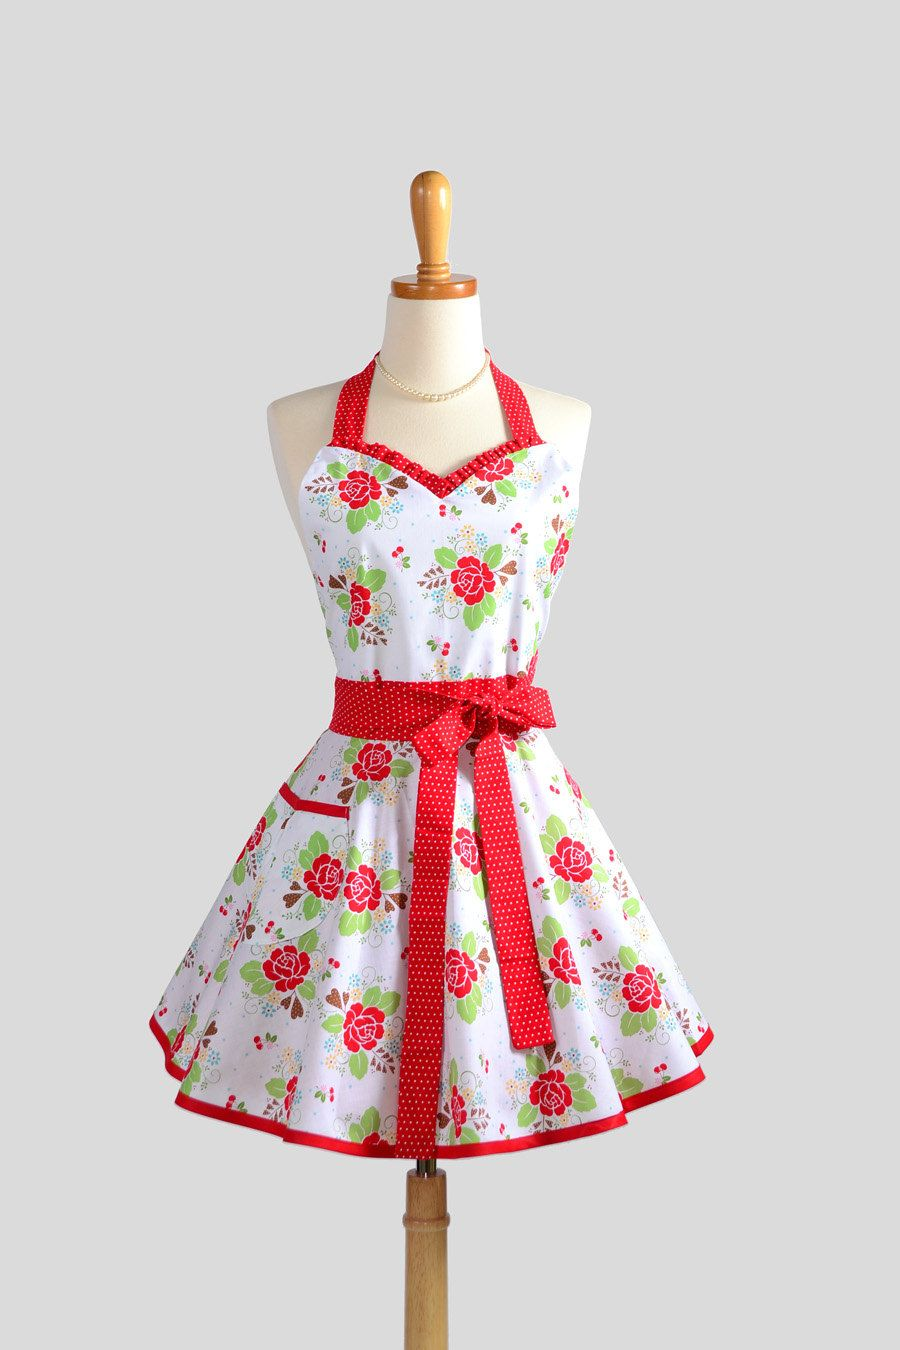 sweetheart retro apron cute womens apron in red roses. Black Bedroom Furniture Sets. Home Design Ideas